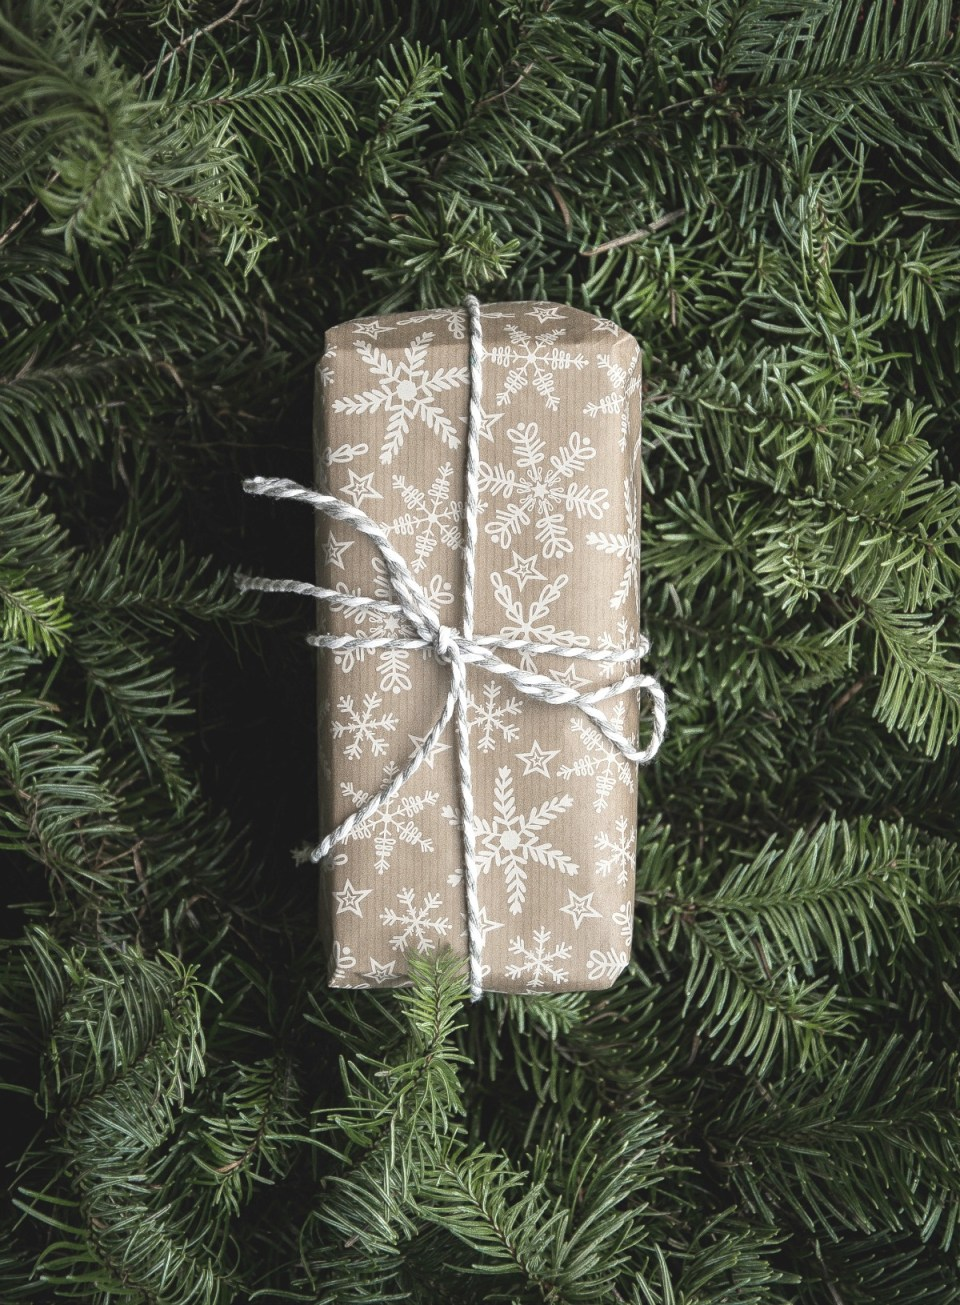 The Herbal Academy Holiday Pop-Up Shop Is Open! | Herbal Academy | Our holiday pop-up shop is now open and we have some awesome herbal goods, perfect for the gift-giving season! Come check it out!